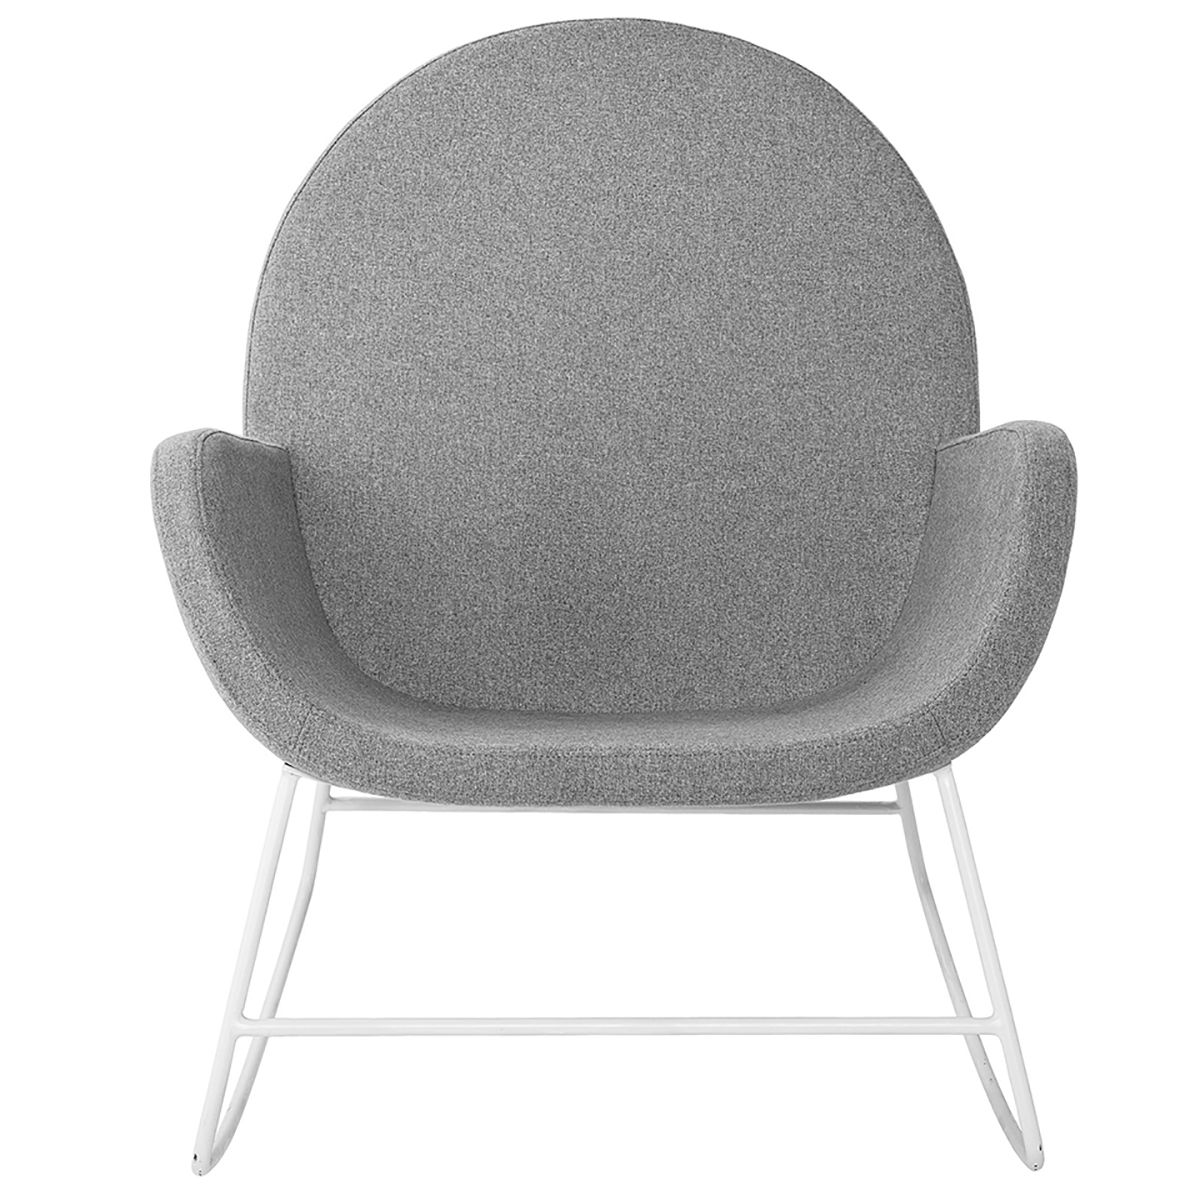 Liva Grey Rocking Chair Intended For Rocking Chairs & Lounge Chairs In Grey (View 7 of 20)